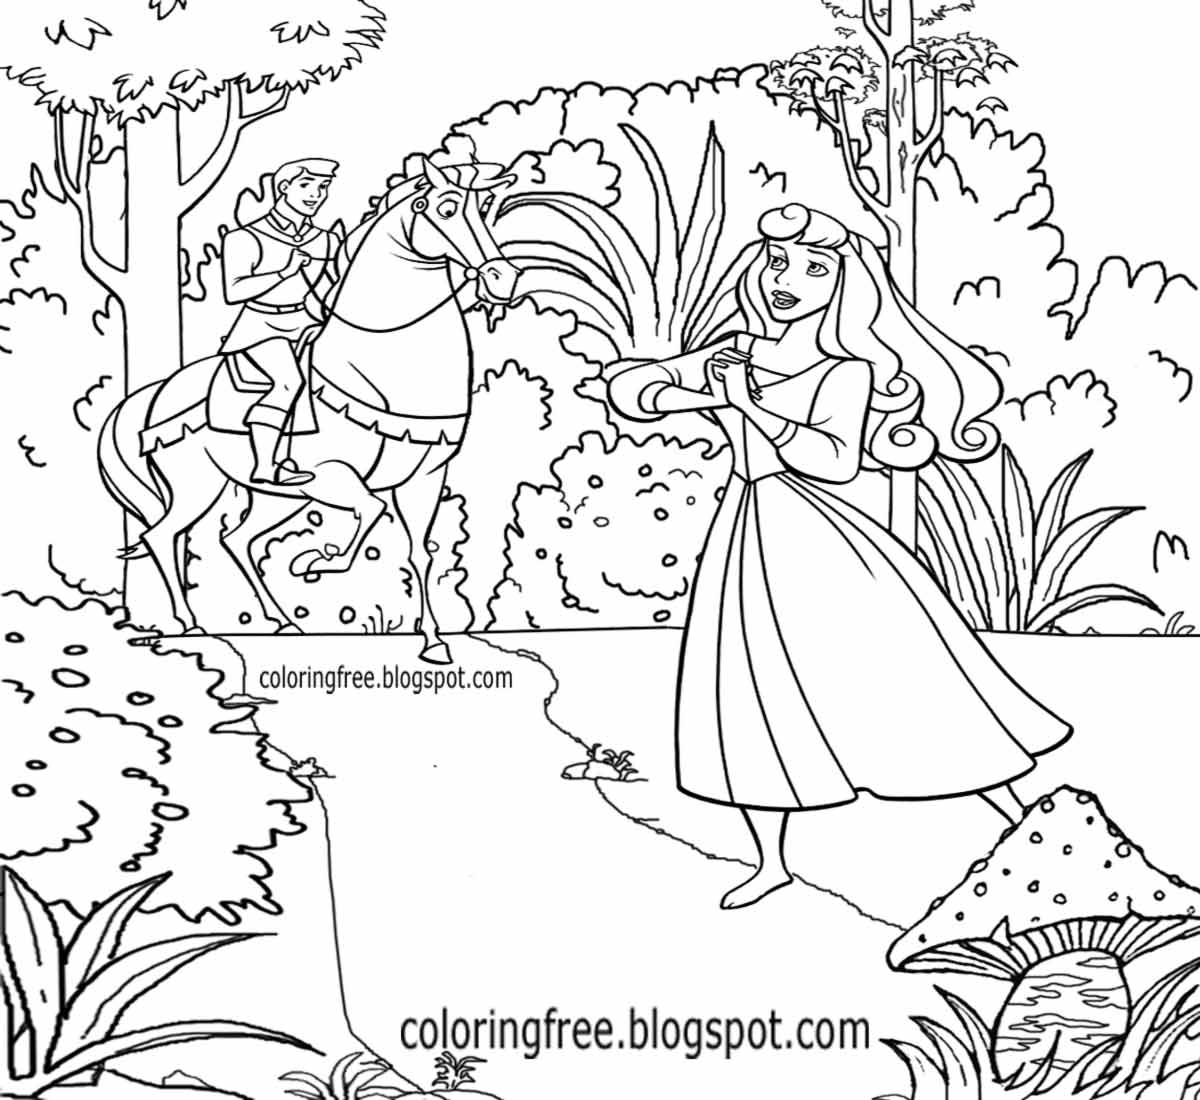 Free coloring pages printable pictures to color kids for Magical coloring pages